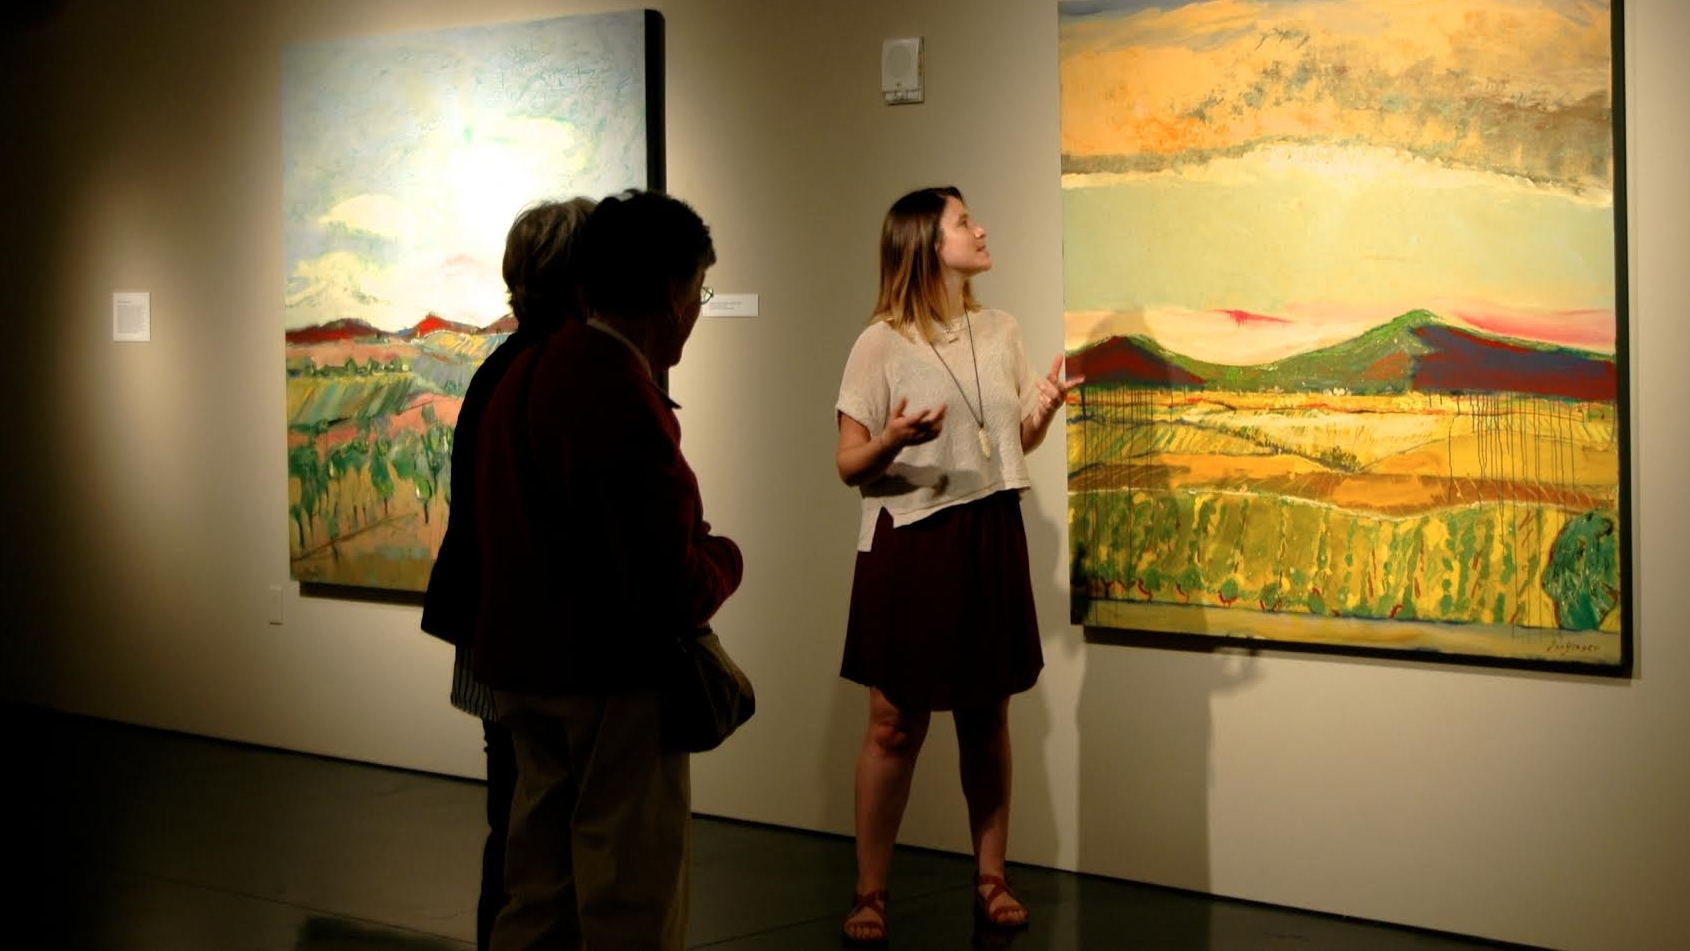 McKenzie Conner working as a docent in a gallery